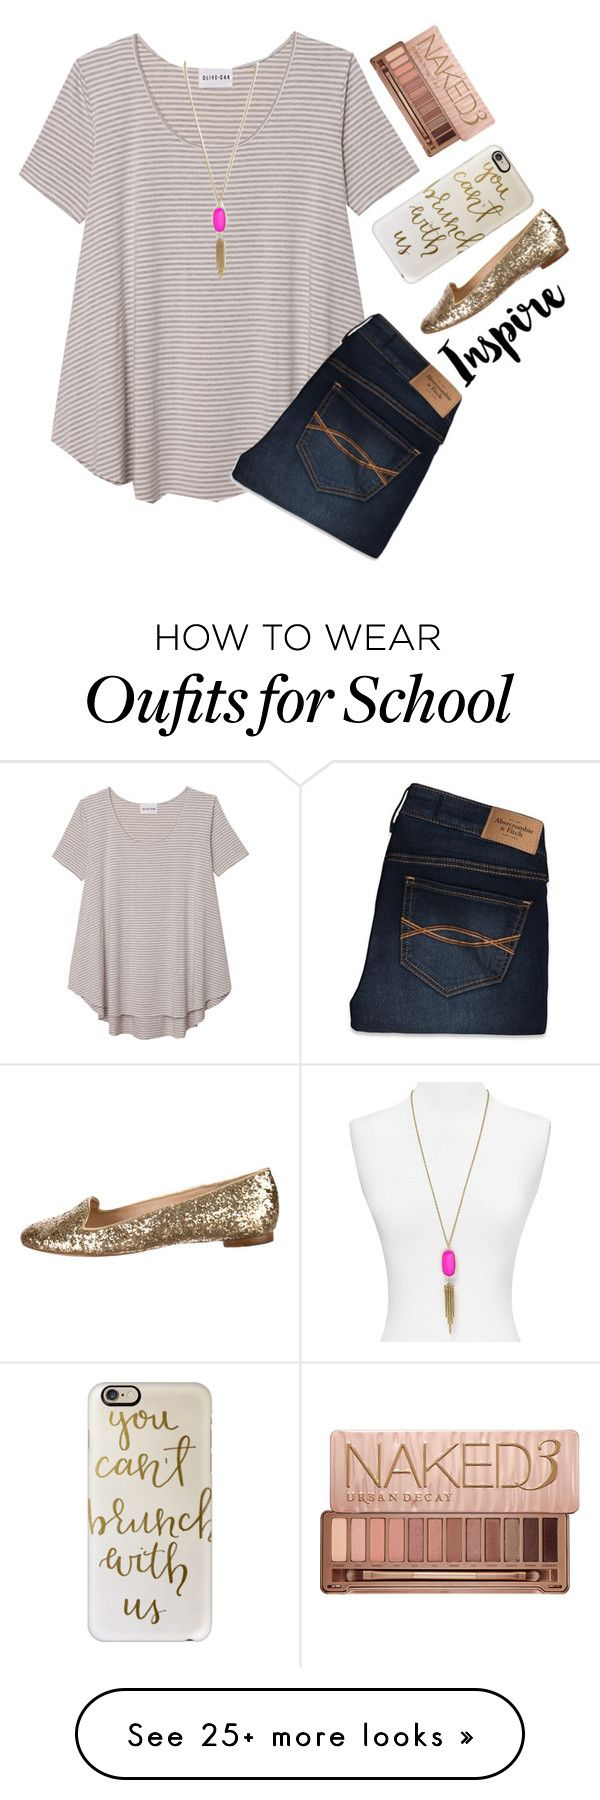 """10 days left of school"" by emmagracejoness on Polyvore featuring Olive + Oak, Casetify, Kate Spade, Urban Decay, Abercrombie & Fitch and Kendra Scott"